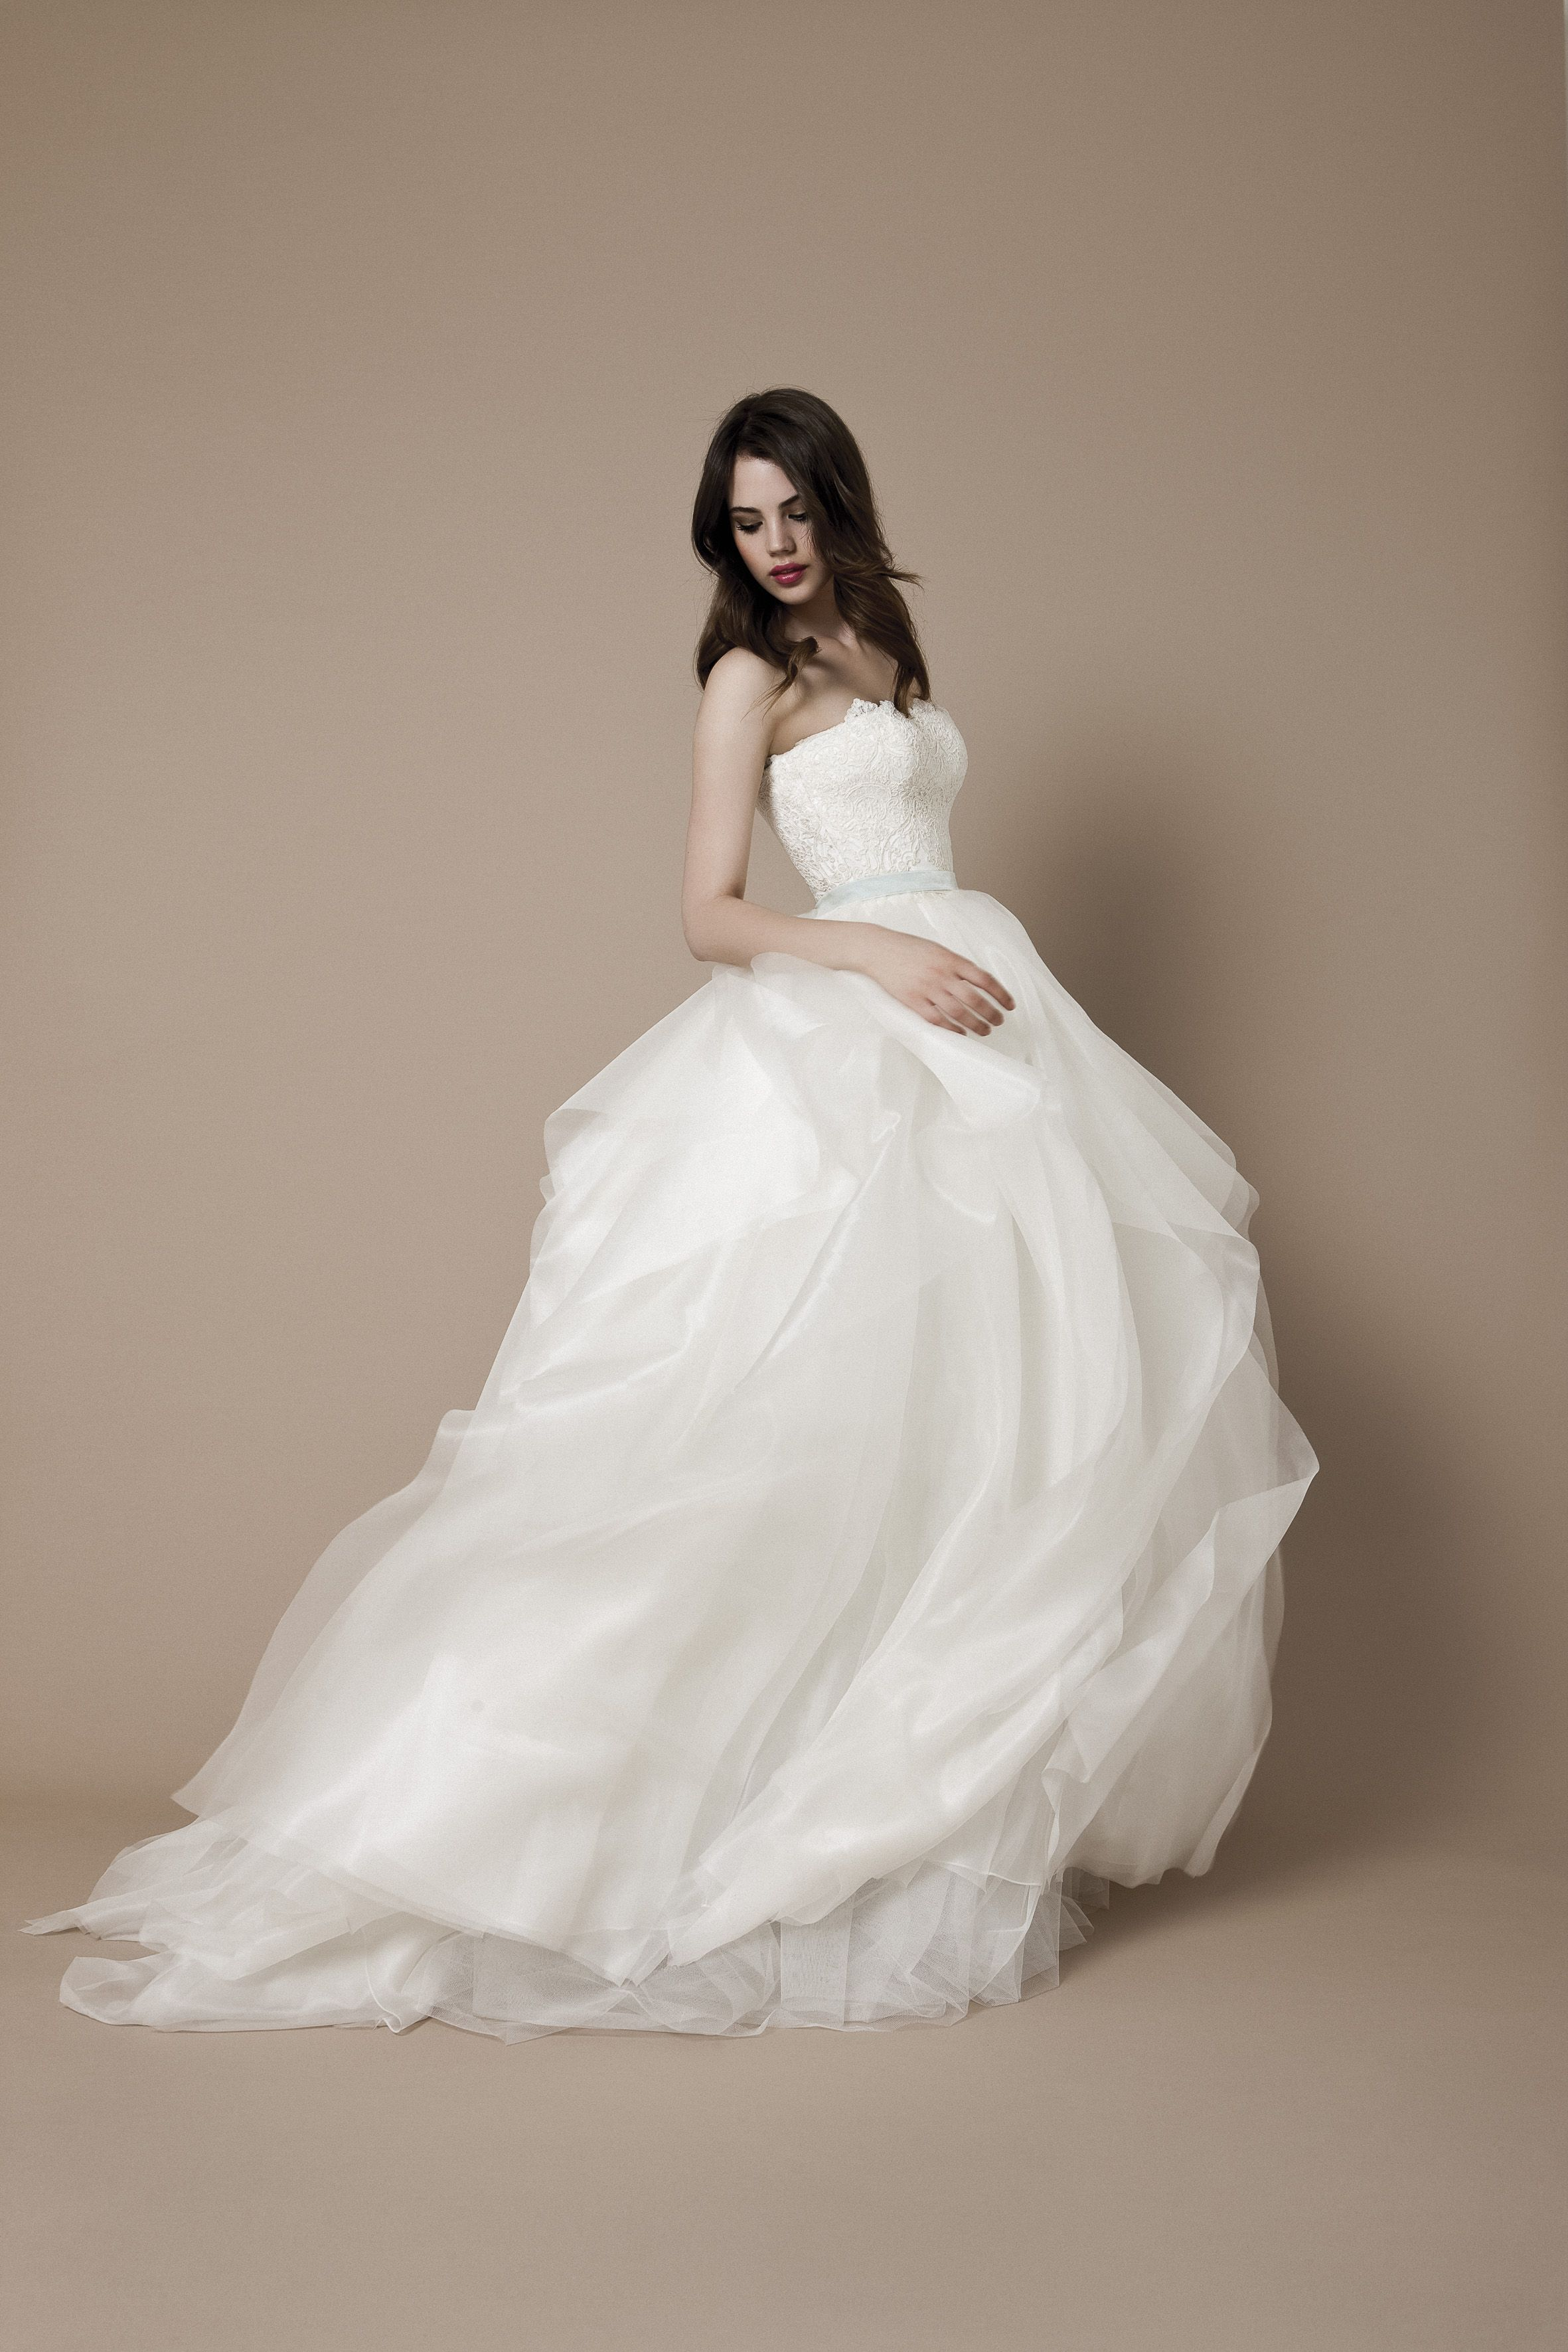 The Daalarna Wedding Dress Collection Recently Launched In US Features Sexy Corsets Flowing Silk Skirts And Romantic Tulle Ball Gowns